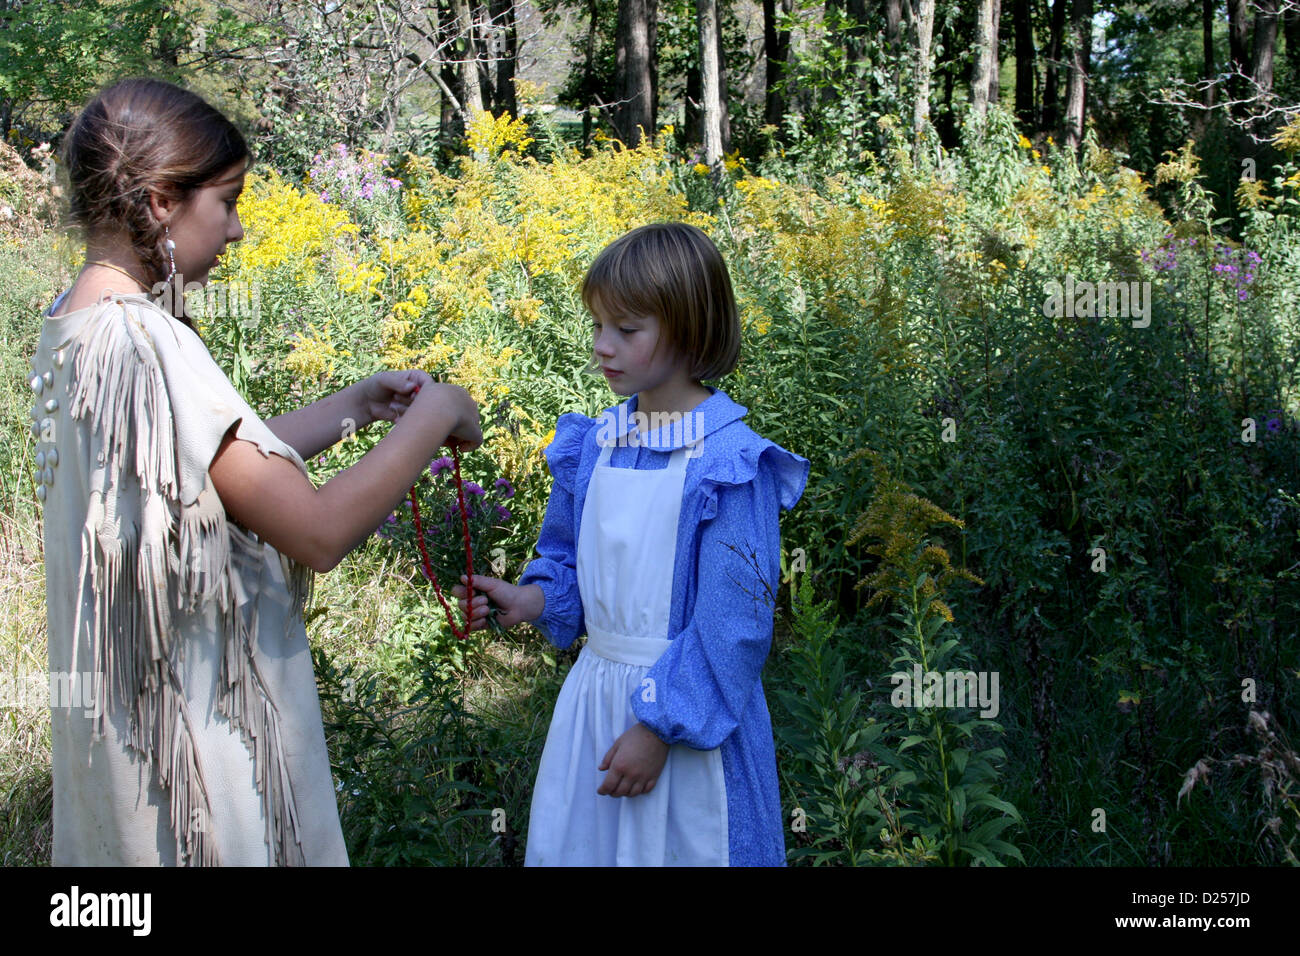 A Native American Indian Girl Trading Beads For Flowers With A Child Stock Photo Alamy